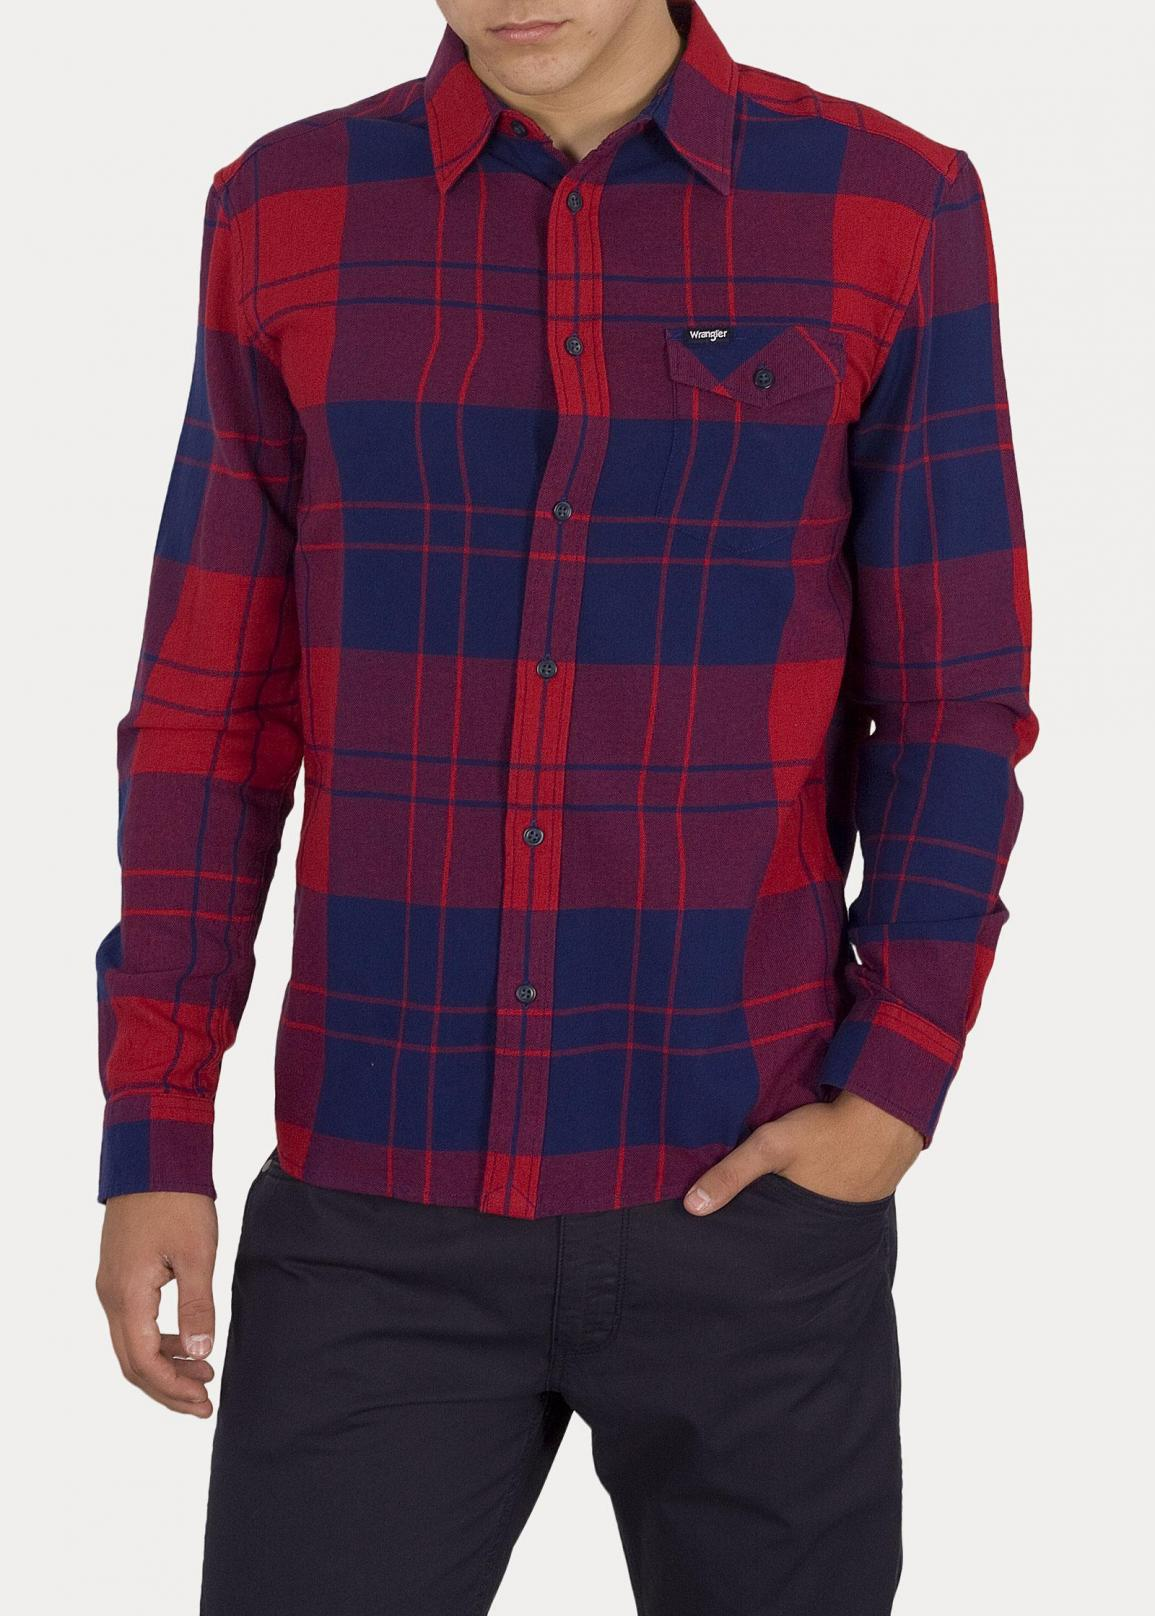 Wrangler® One Pocket Flap Shirt - Red